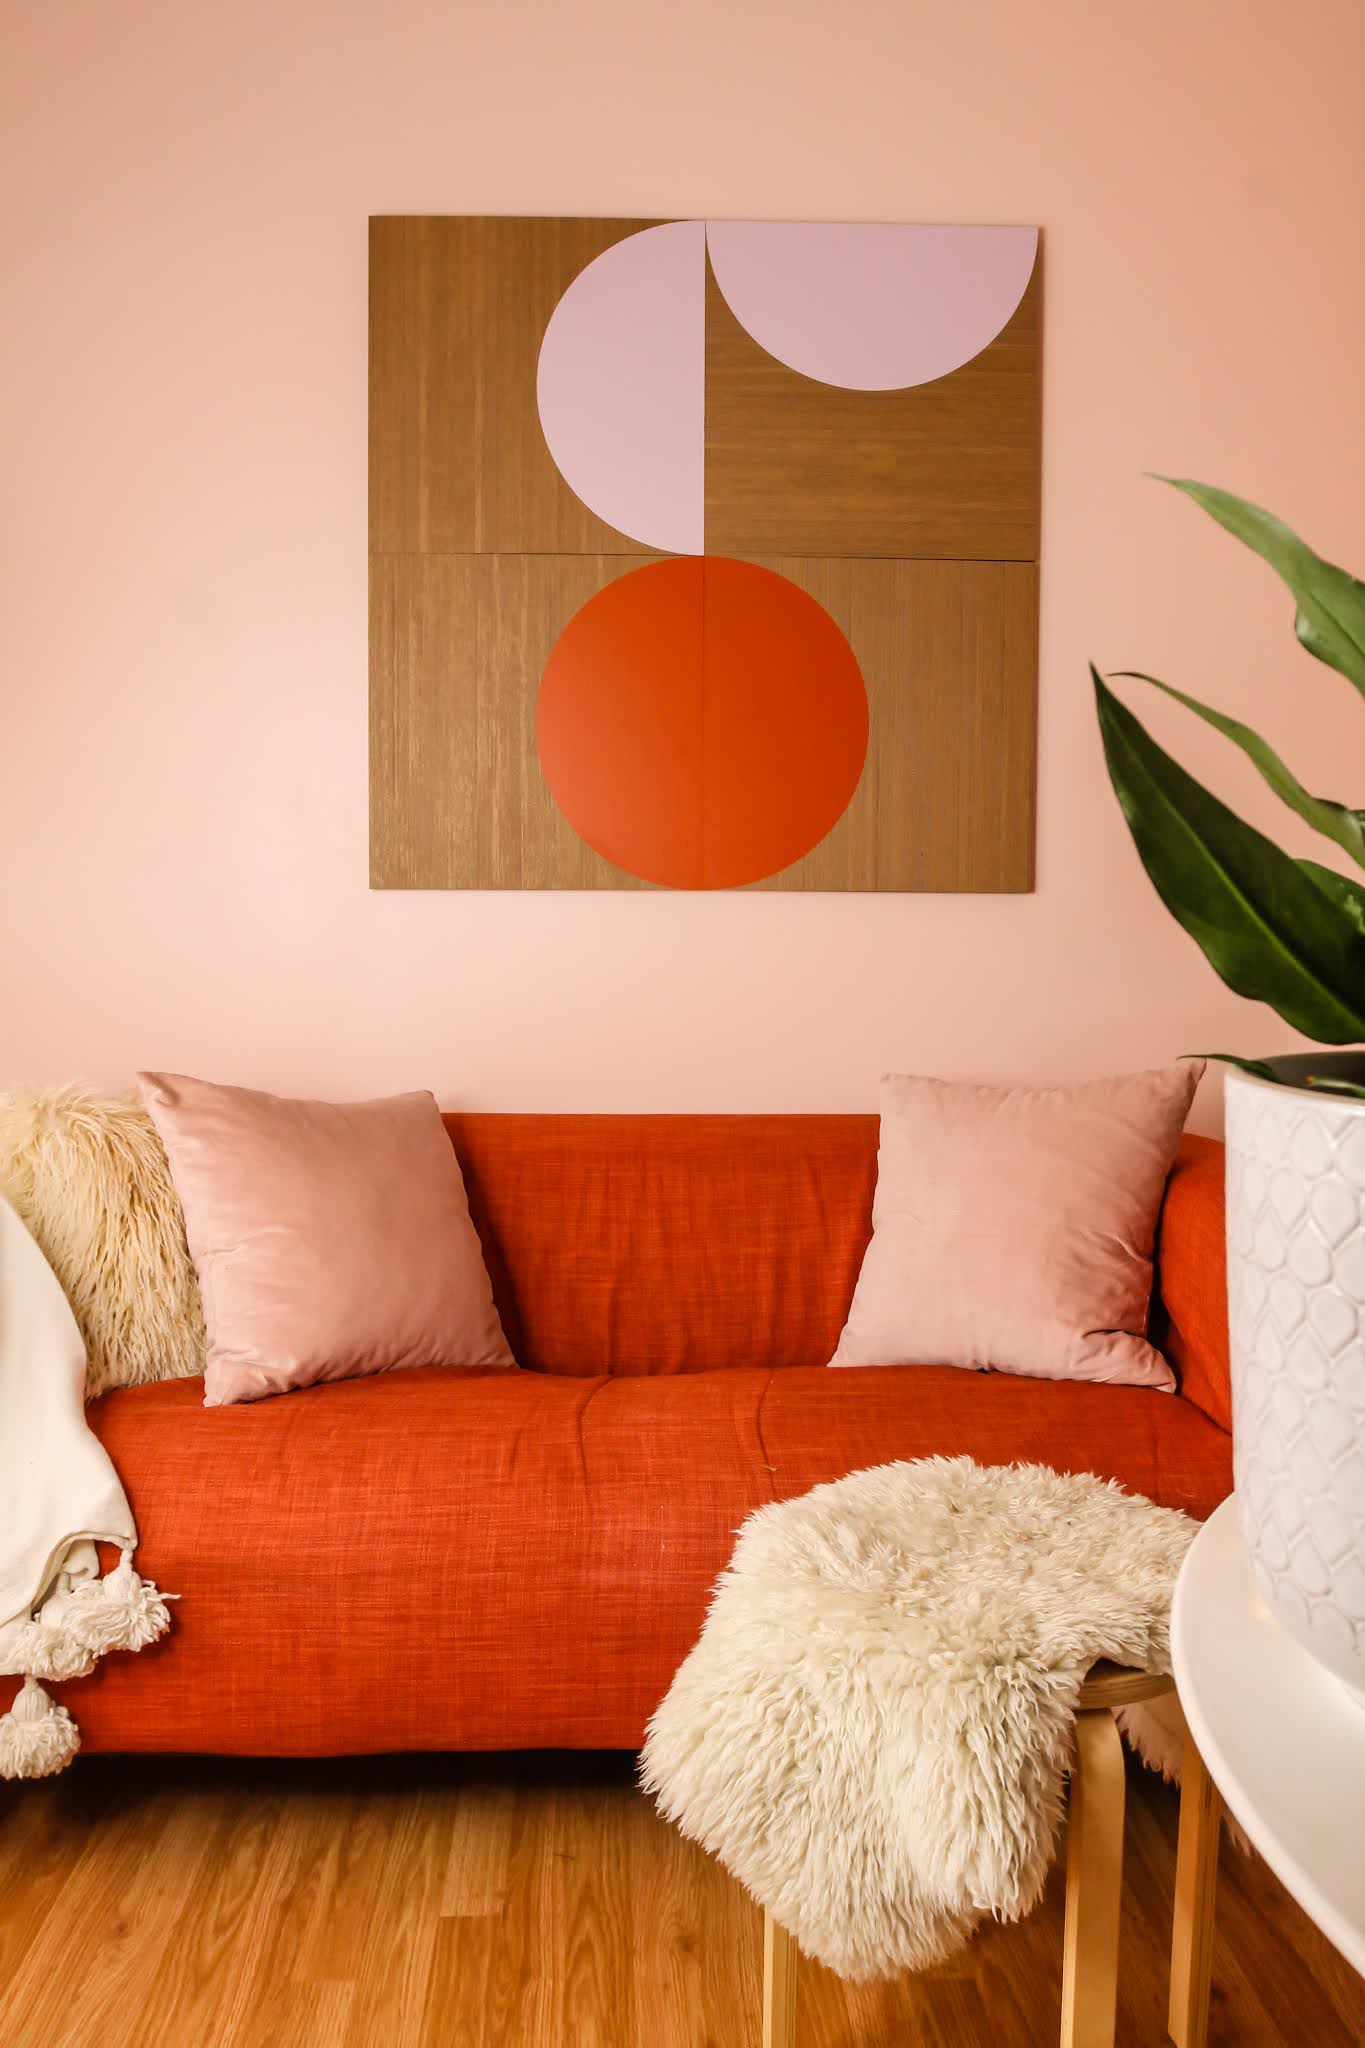 pink and orange decor // spacekit // spacekit decor // sustainable wall art // sustainable home decor // pink and orange room // colorful homes // pink walls // unique wall art // eco friendly wall art // modular wall art // pink room // orange room // orange couch // pink walls // NYC homes // home decor Inspo // office decor inspo // living room inspo // colorful home inspo // space kit modular wall decor // spacekit half moon design // / wall decor inspo // small space living // small spaces inspo // pink room inspo // pink office decor inspo // colorful rooms // sustainable wall decor // sustainable home decor